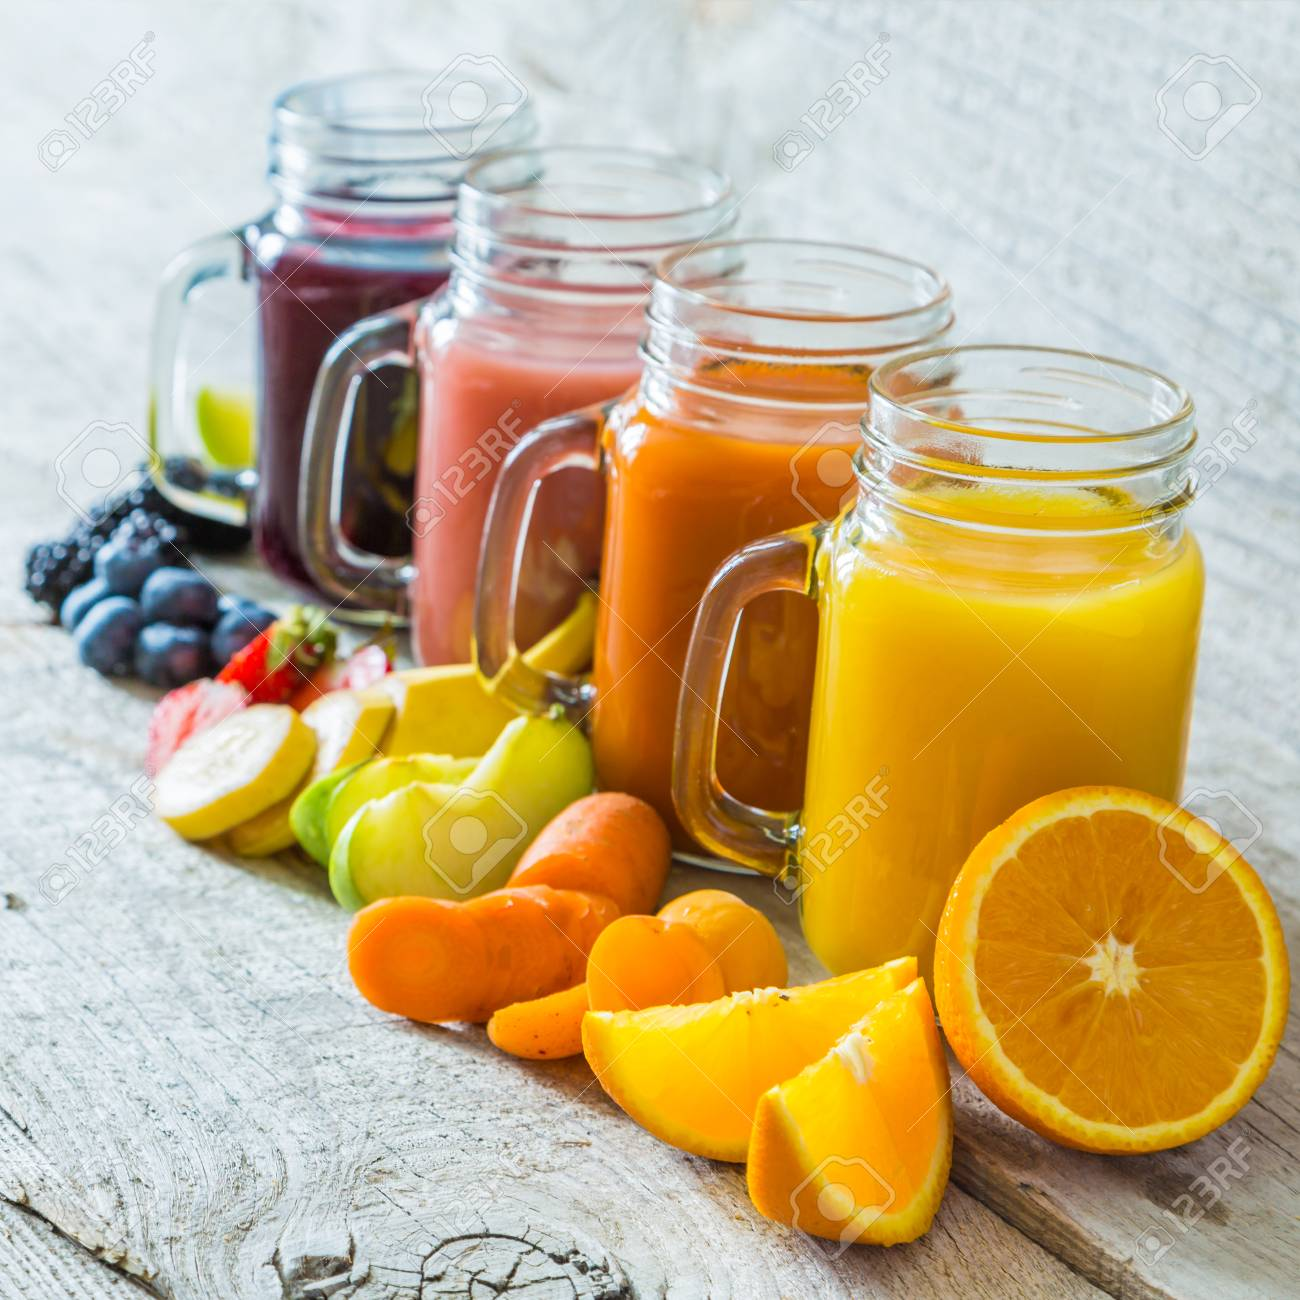 slection of fresh fruit juices in jars copy space stock photo